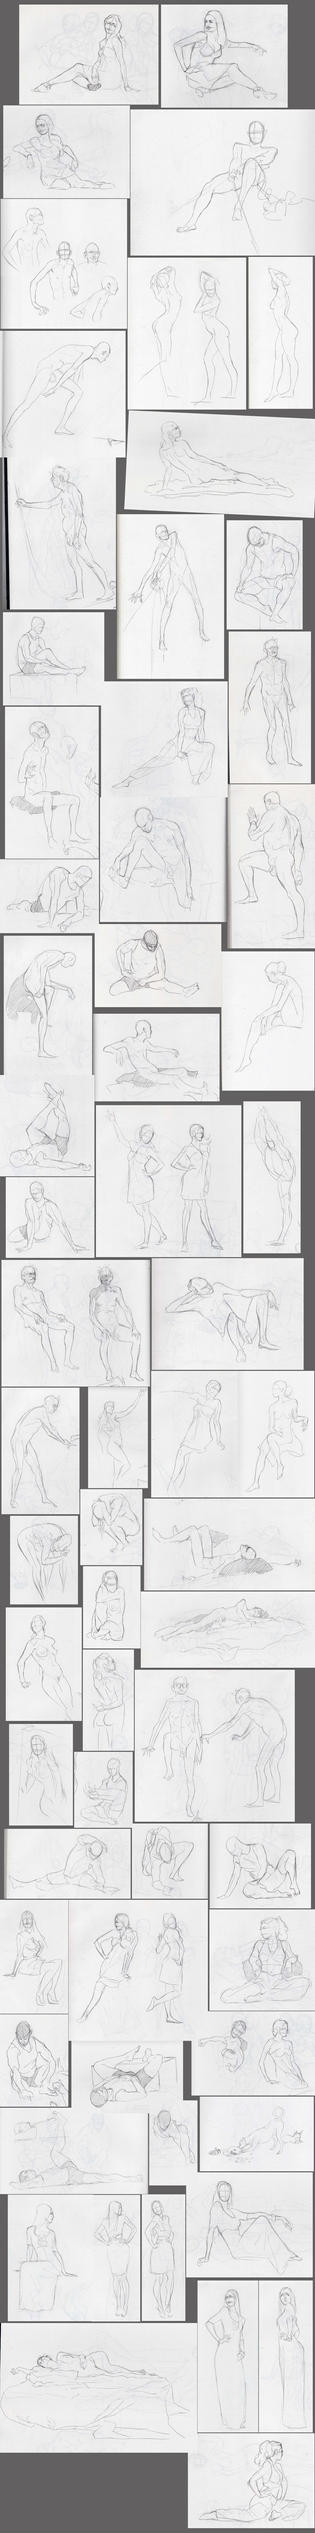 -Life Drawing Part II- by JoeDillon